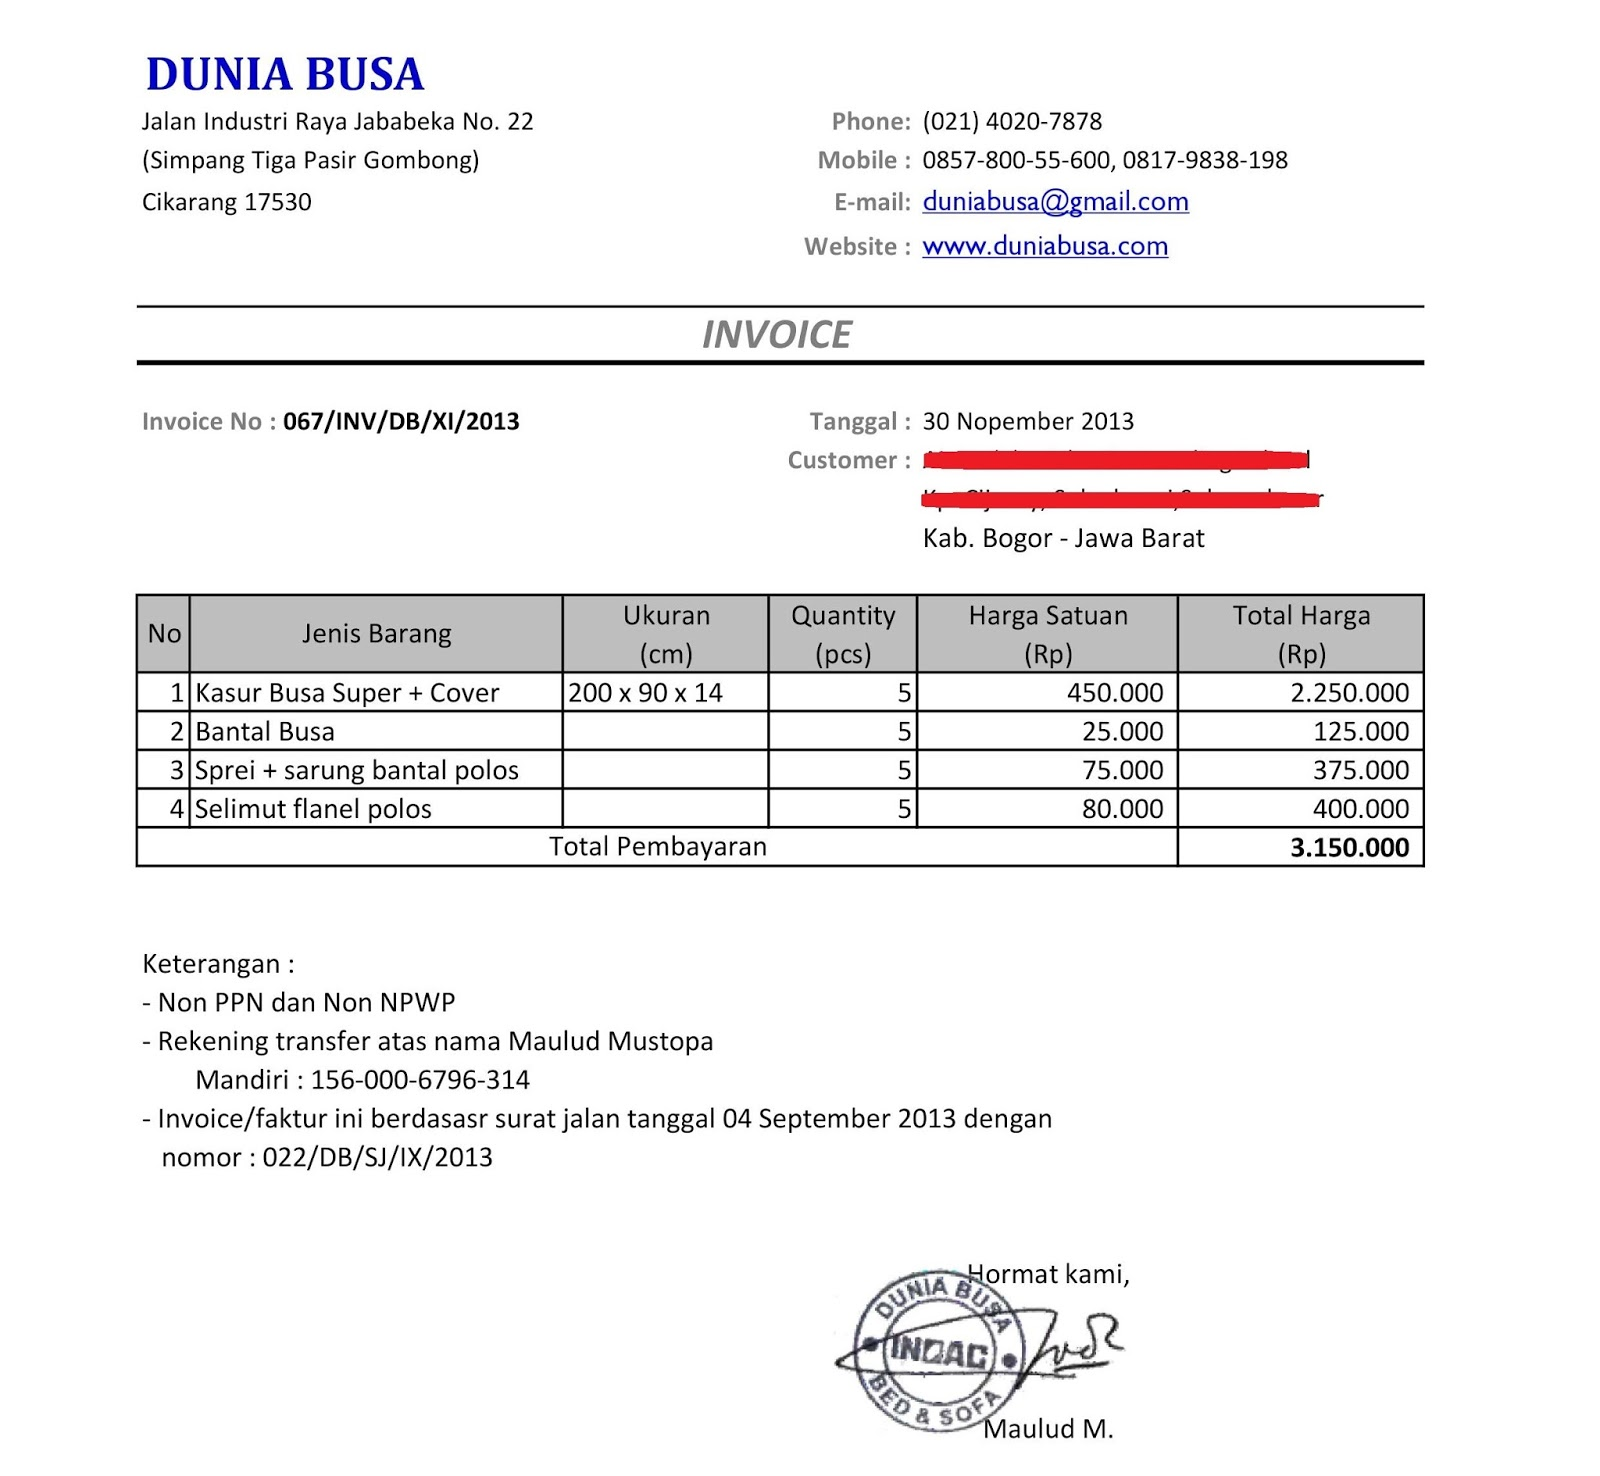 Ultrablogus  Pleasing Free Invoice Online  Create Invoice Online  Invoice Template  With Great Contoh Format Invoice Atau Surat Tagihan  Brankas Arsip  Free Invoice Online With Breathtaking Auto Dealer Invoice Price Also Custom Printed Invoice Books In Addition Celtic Invoice Discounting And Online Invoicing Service As Well As Dealer Invoice Price Honda Additionally Single Invoice Factoring From Sklepco With Ultrablogus  Great Free Invoice Online  Create Invoice Online  Invoice Template  With Breathtaking Contoh Format Invoice Atau Surat Tagihan  Brankas Arsip  Free Invoice Online And Pleasing Auto Dealer Invoice Price Also Custom Printed Invoice Books In Addition Celtic Invoice Discounting From Sklepco